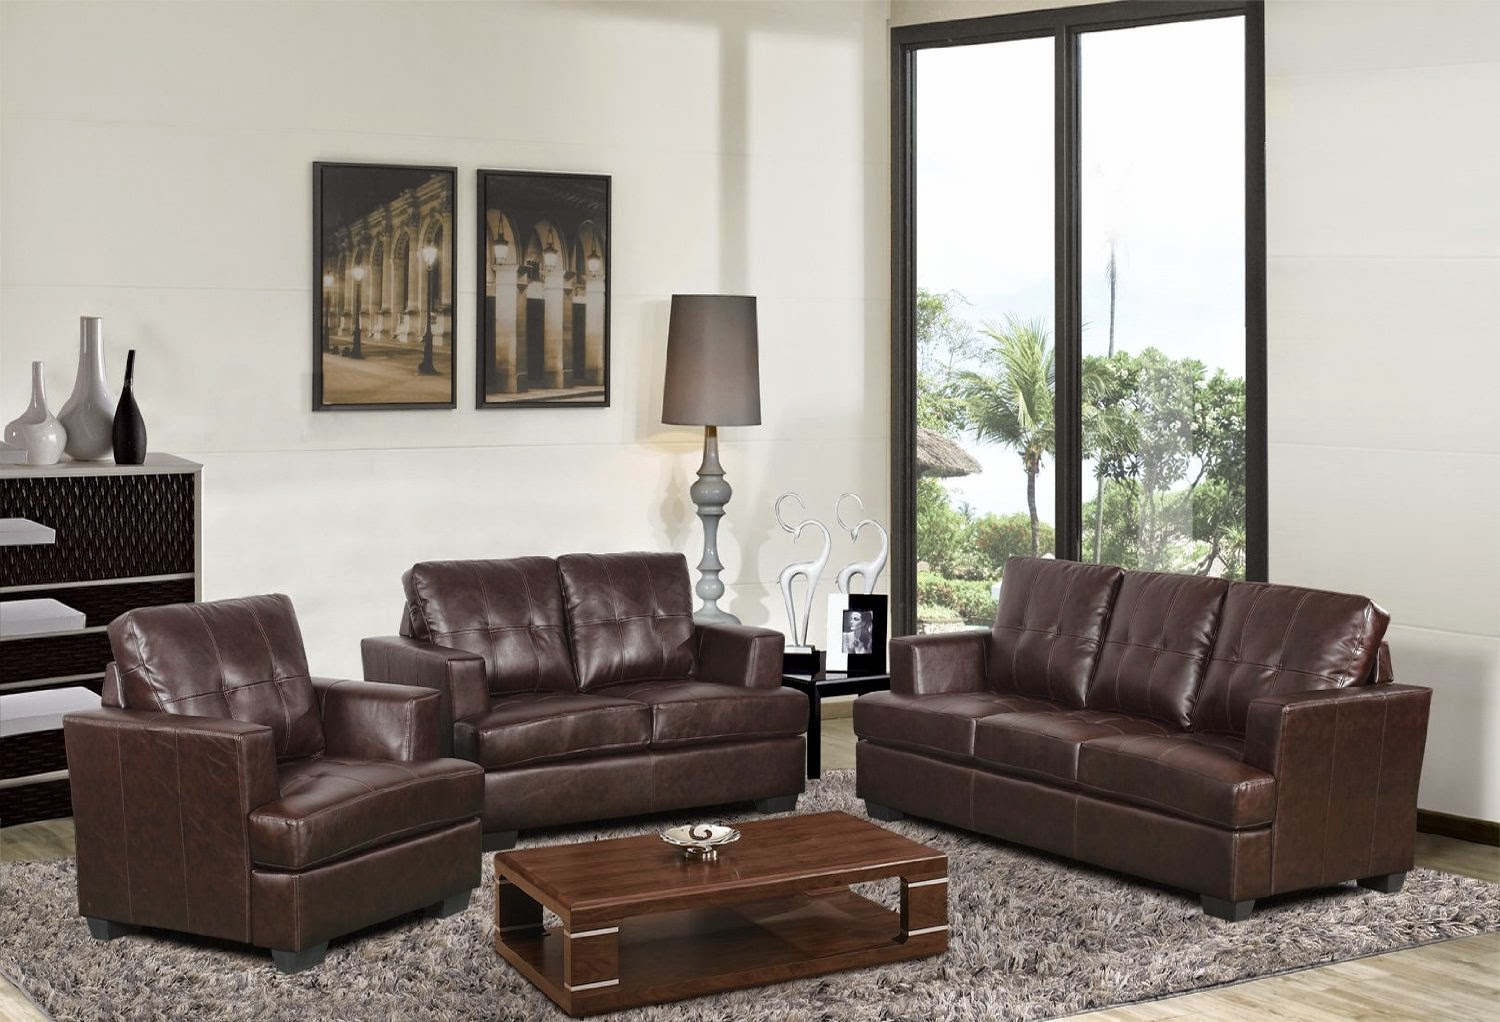 Brown leather sofa and white walls beautiful home design - Marvelous furniture for living room decoration with various round brown cream leather ottoman ...